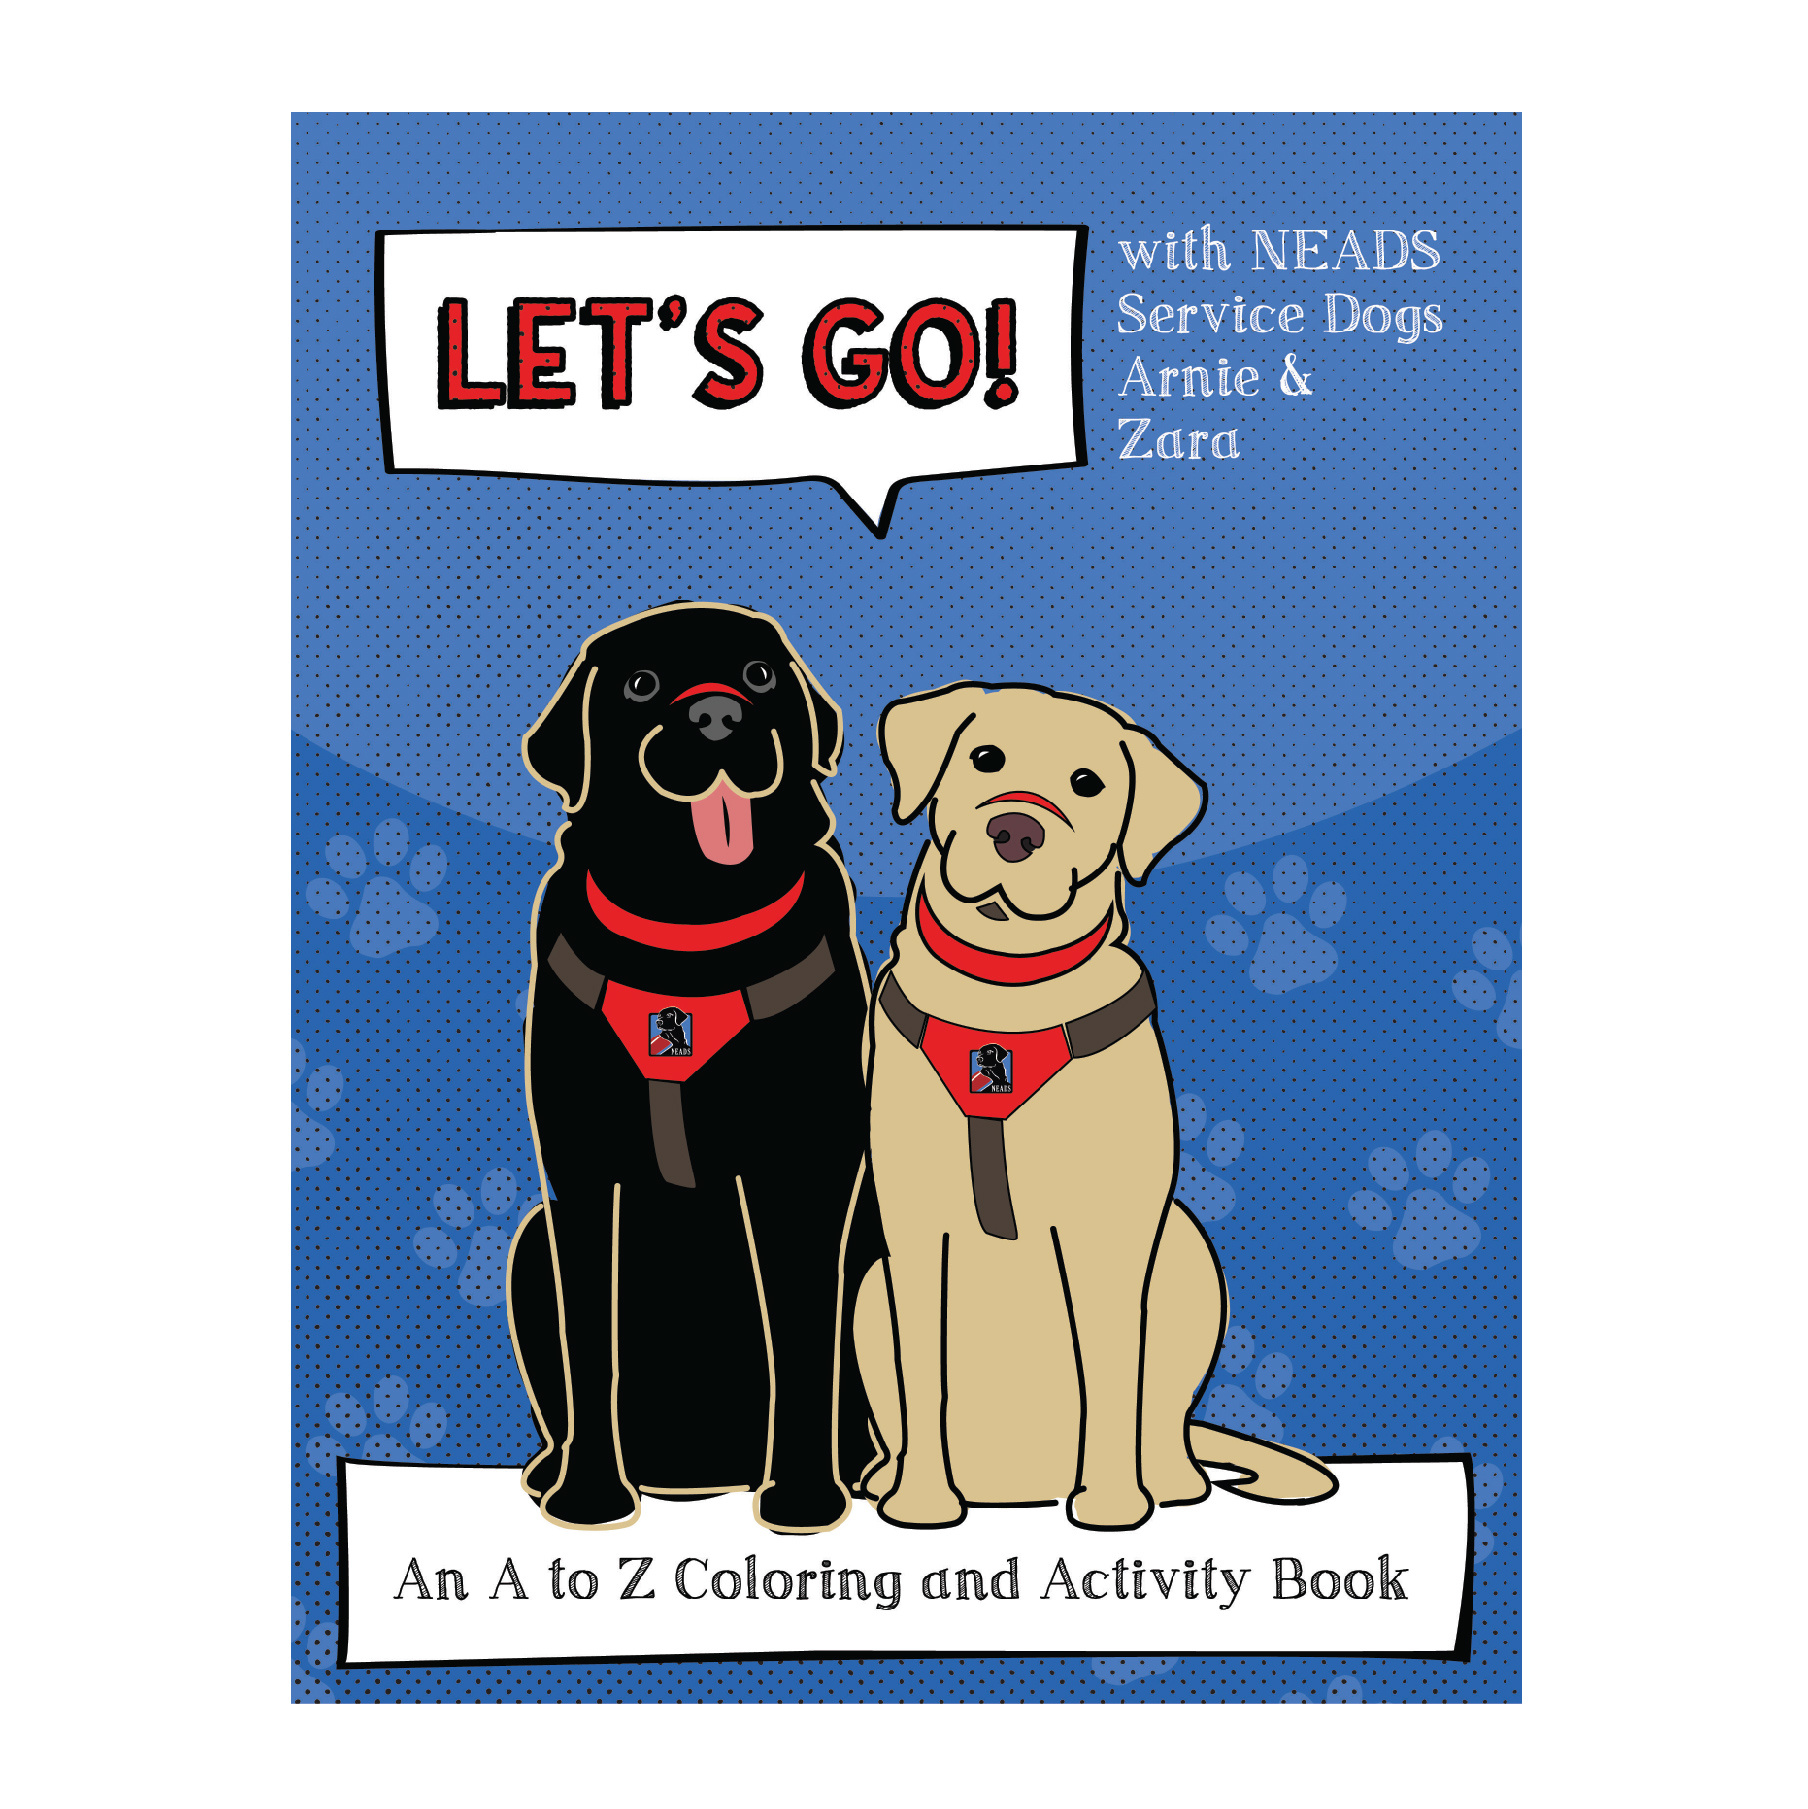 A to Z Coloring & Activity Book